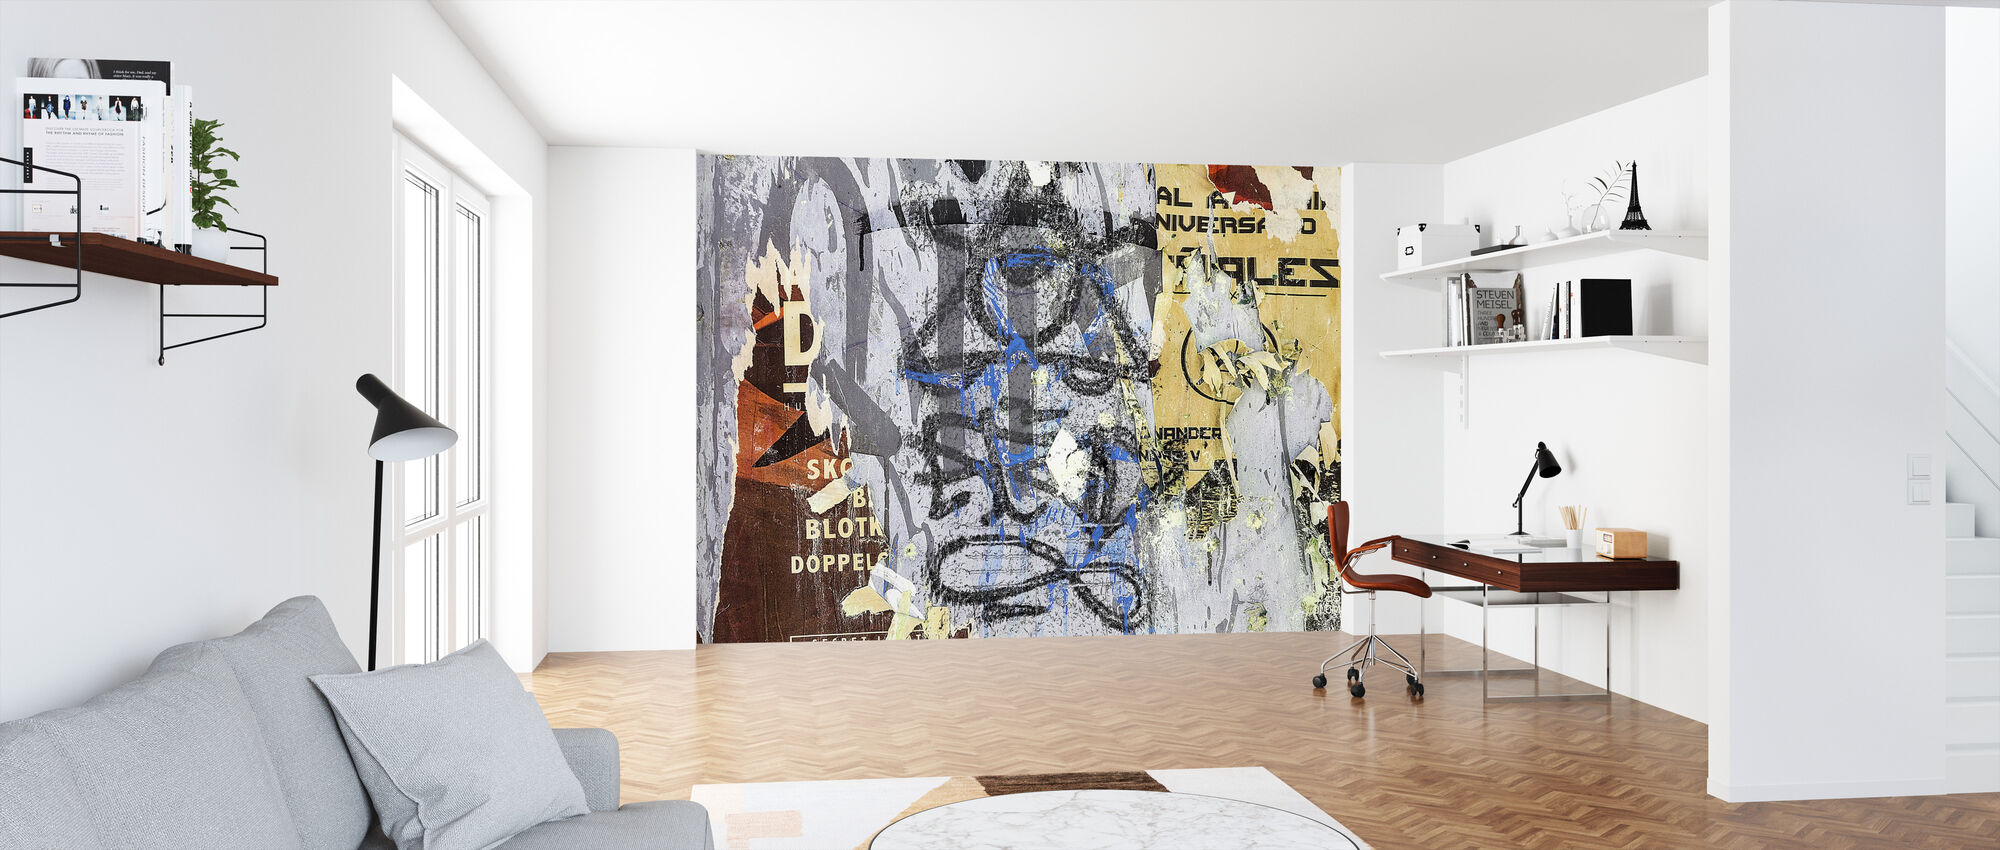 Torn Posters and Graffiti - Wallpaper - Office